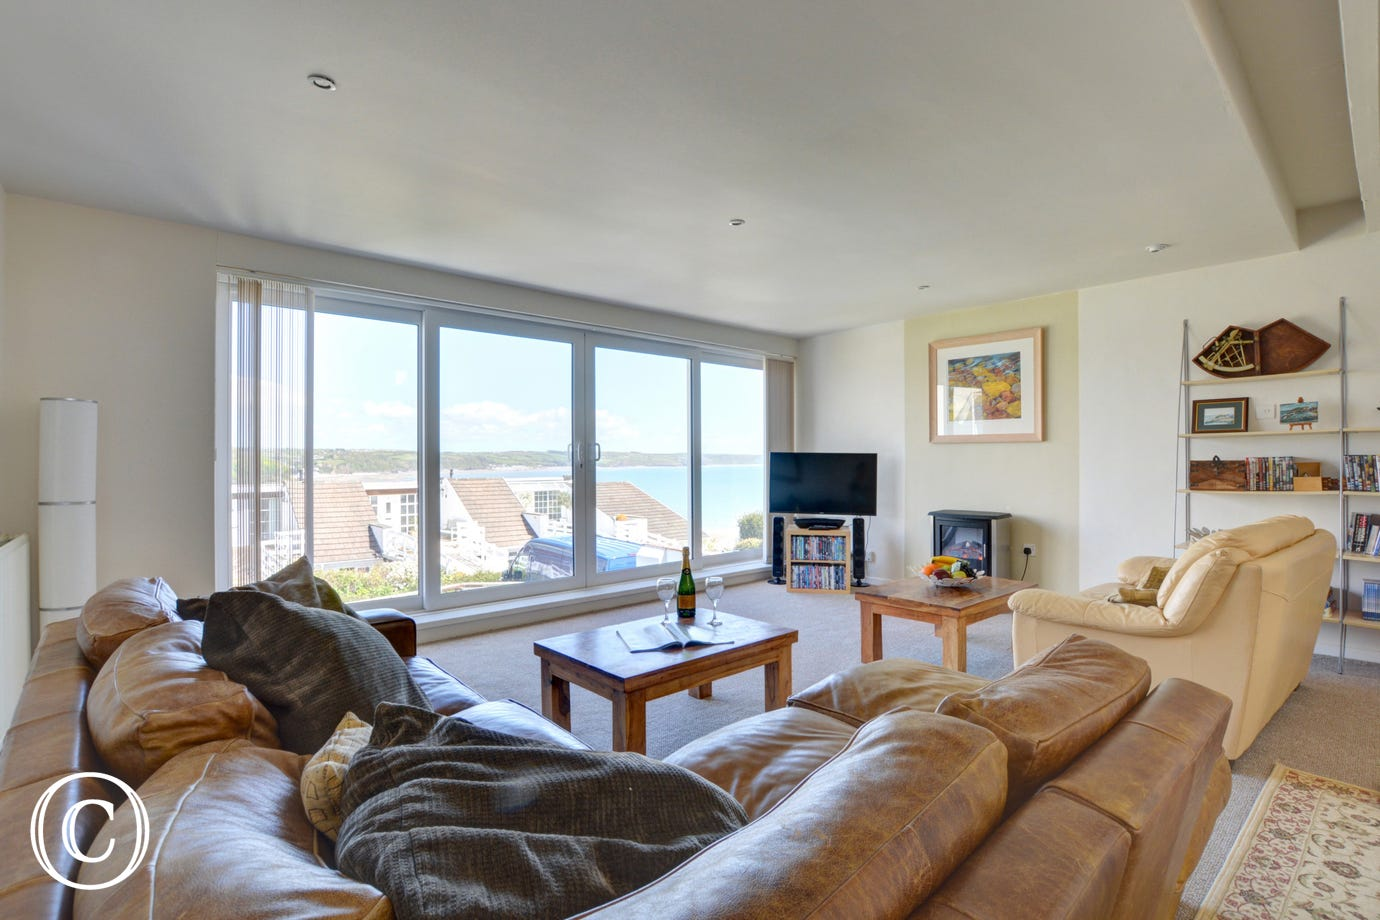 This is an alternate view of the lounge with windows looking out over the village of Saundersfoot